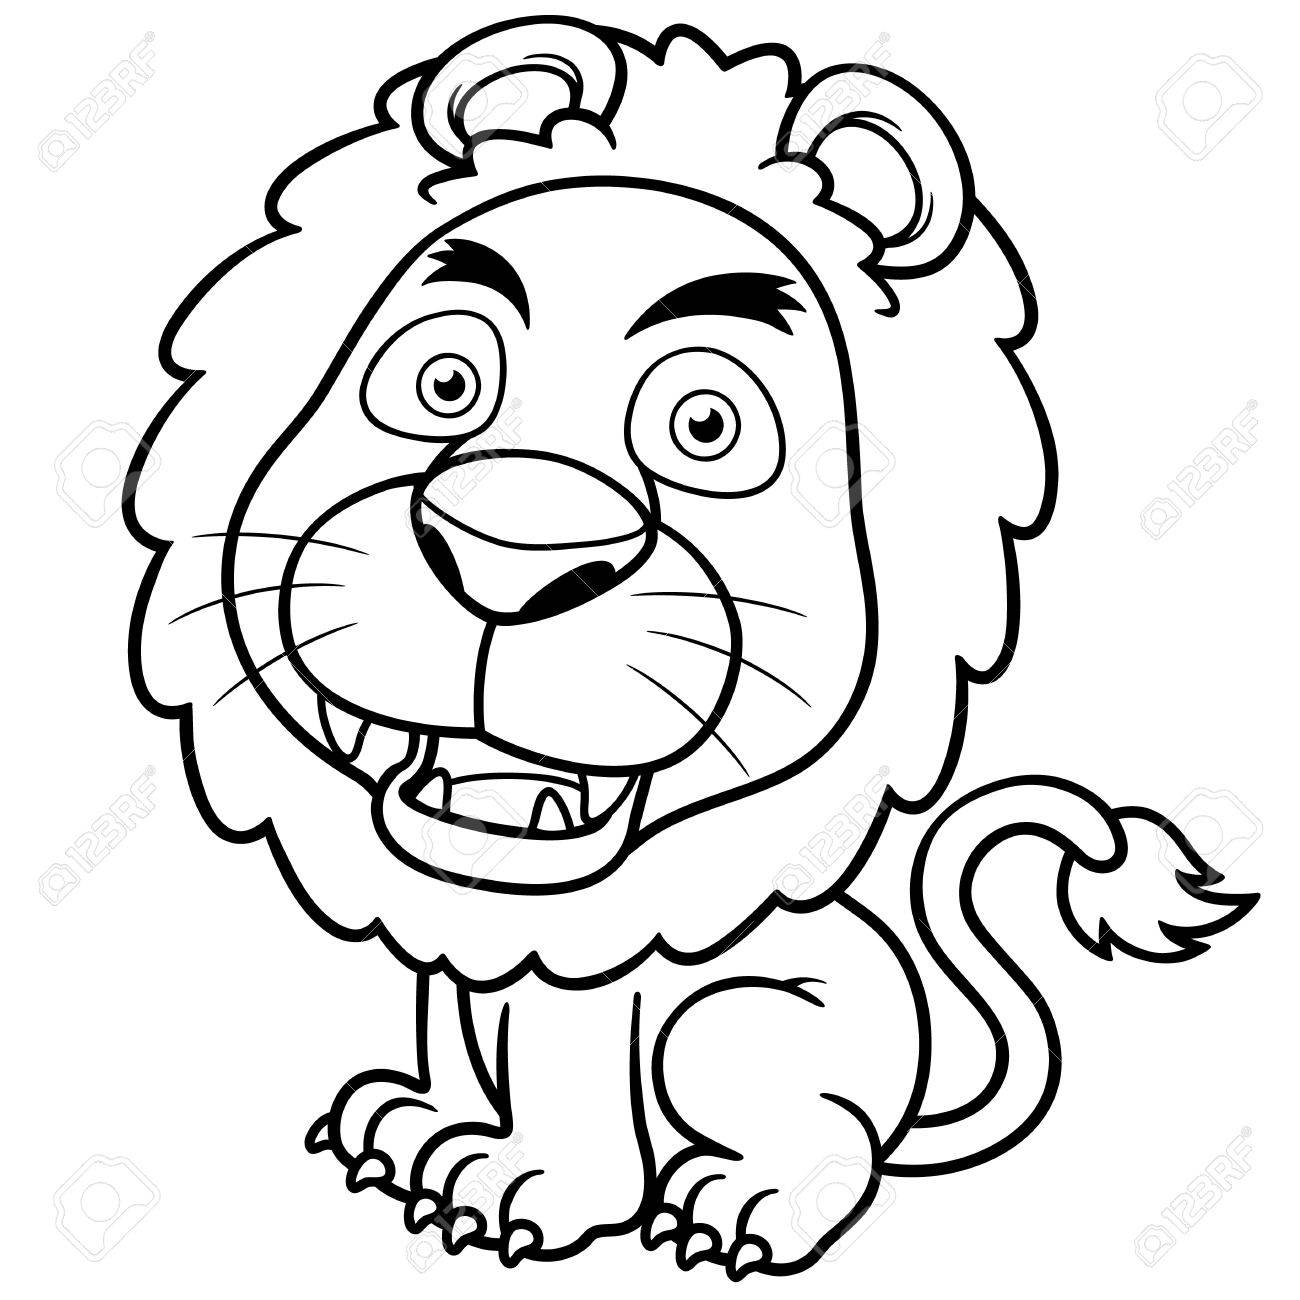 Vector illustration of Lion cartoon - Coloring book Stock Vector - 20898209